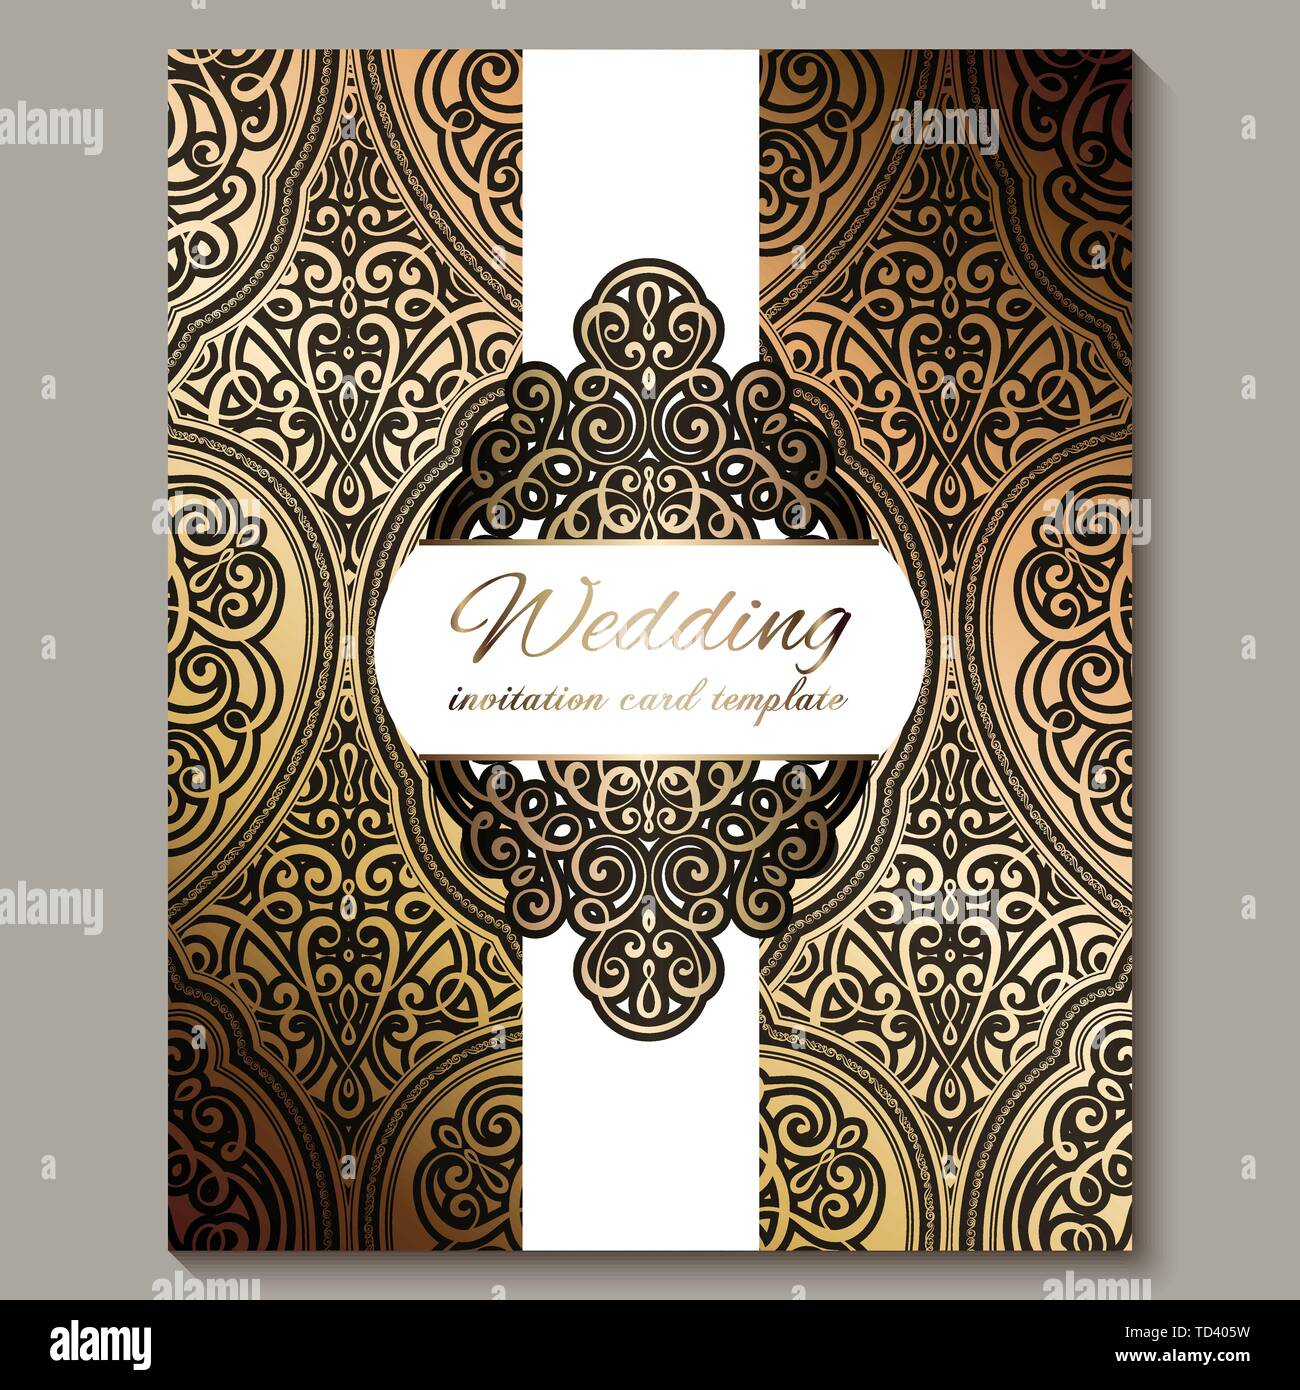 Wedding Invitation Card With Black And Gold Shiny Eastern